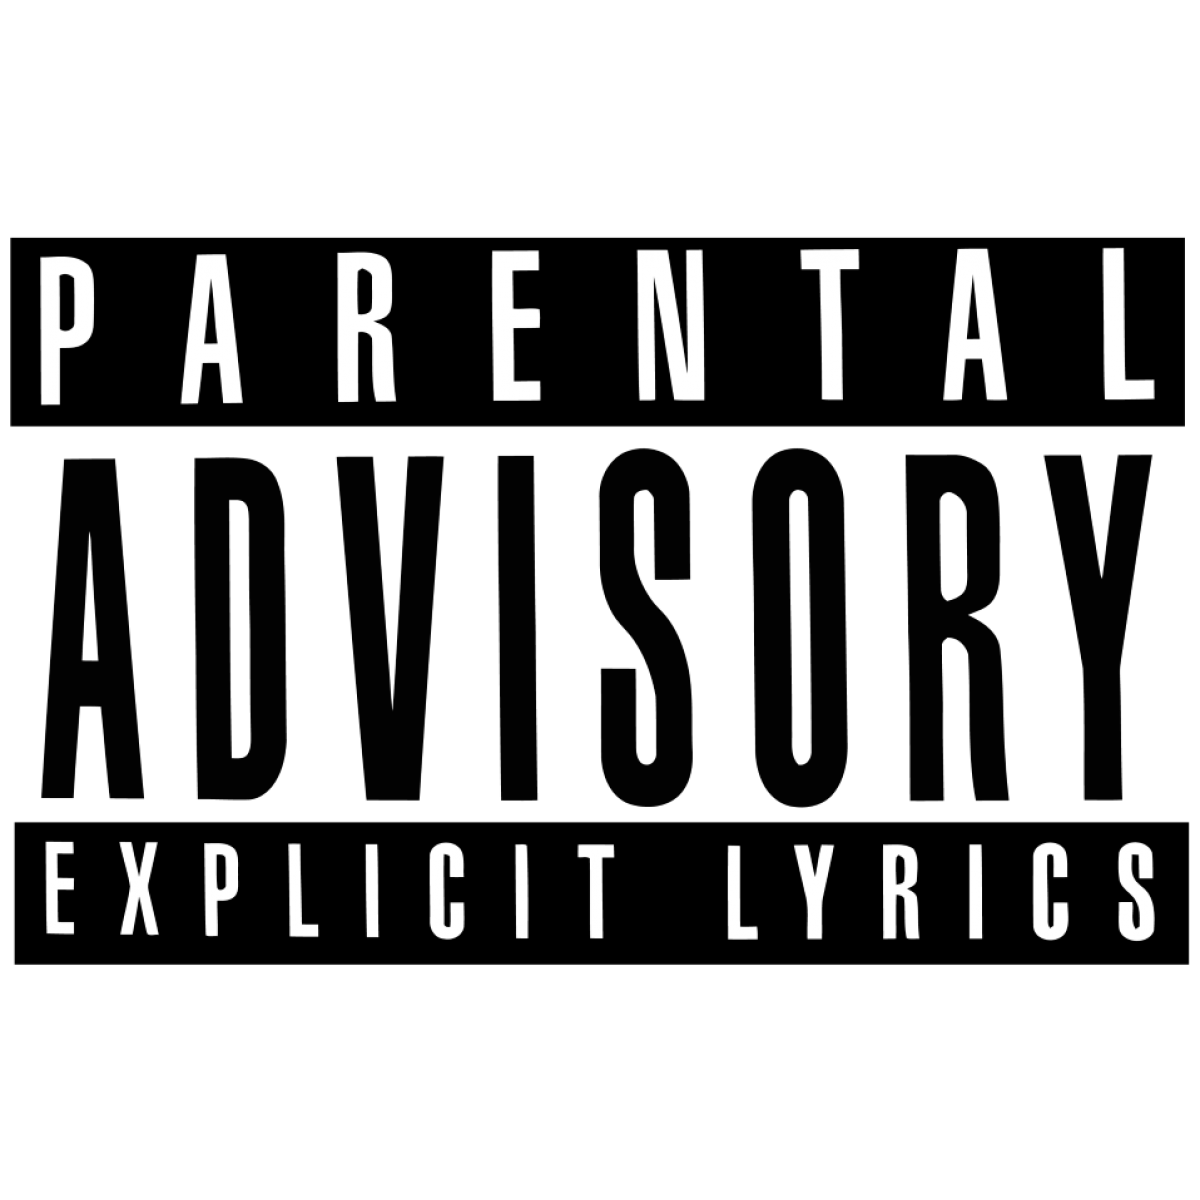 Parental Advisory Explicit Lyrics transparent PNG.